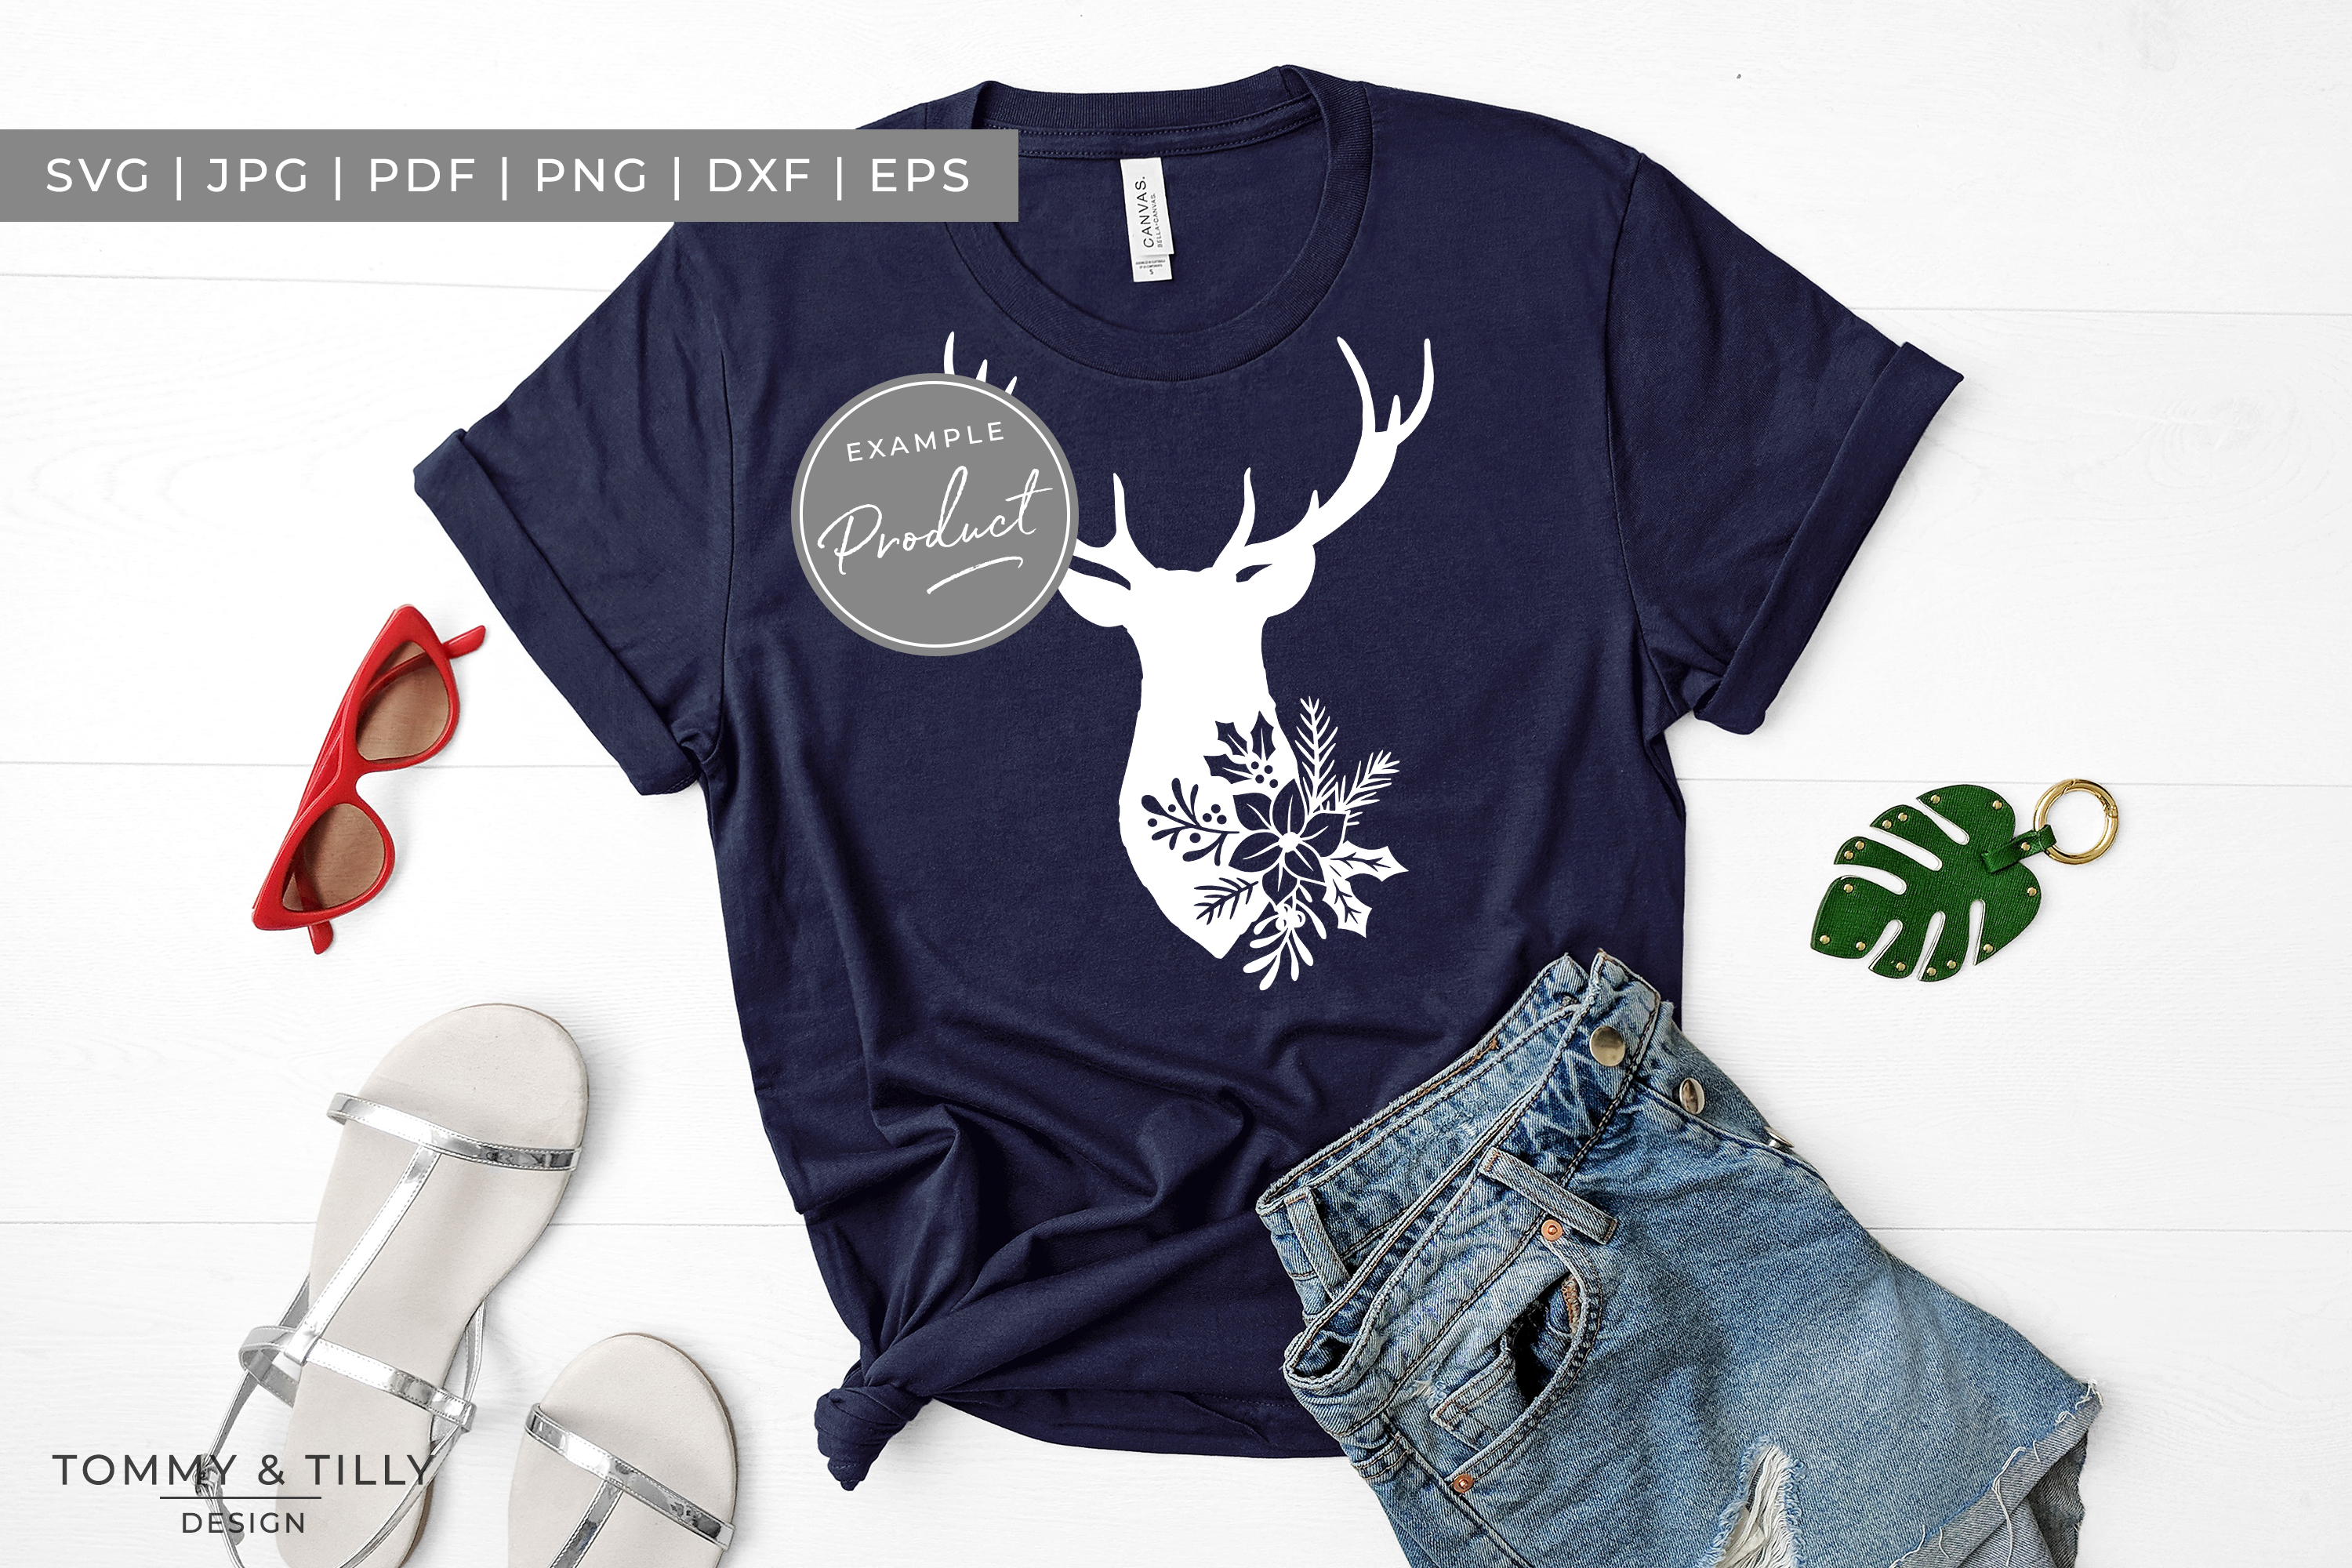 Stag Head No.1 - SVG EPS DXF PNG PDF JPG Cut File example image 3